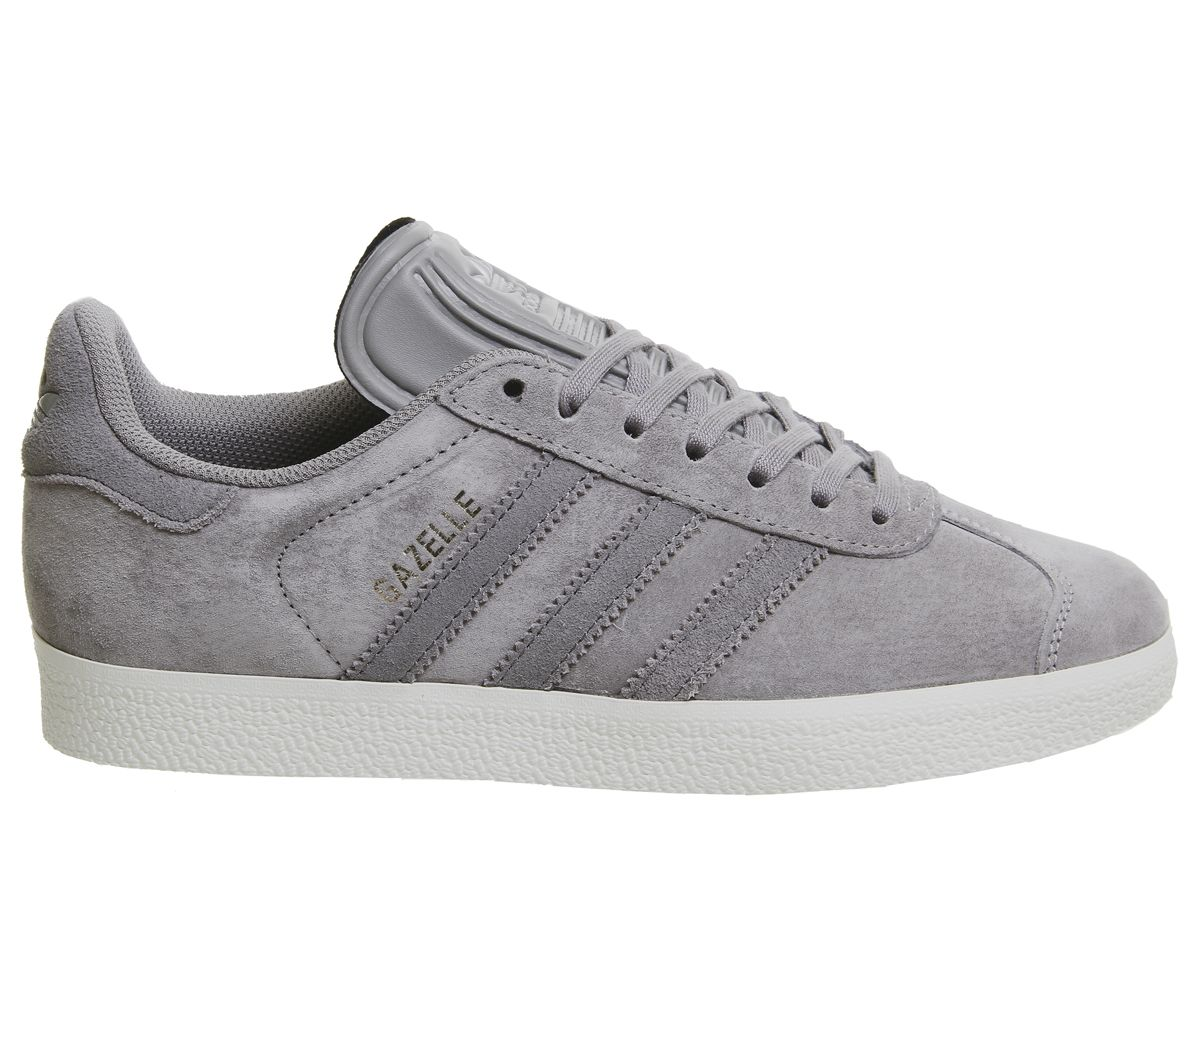 7612c6e7b6070 Sentinel Mens Adidas Gazelle Trainers Solid Grey Four Silver Exclusive  Trainers Shoes